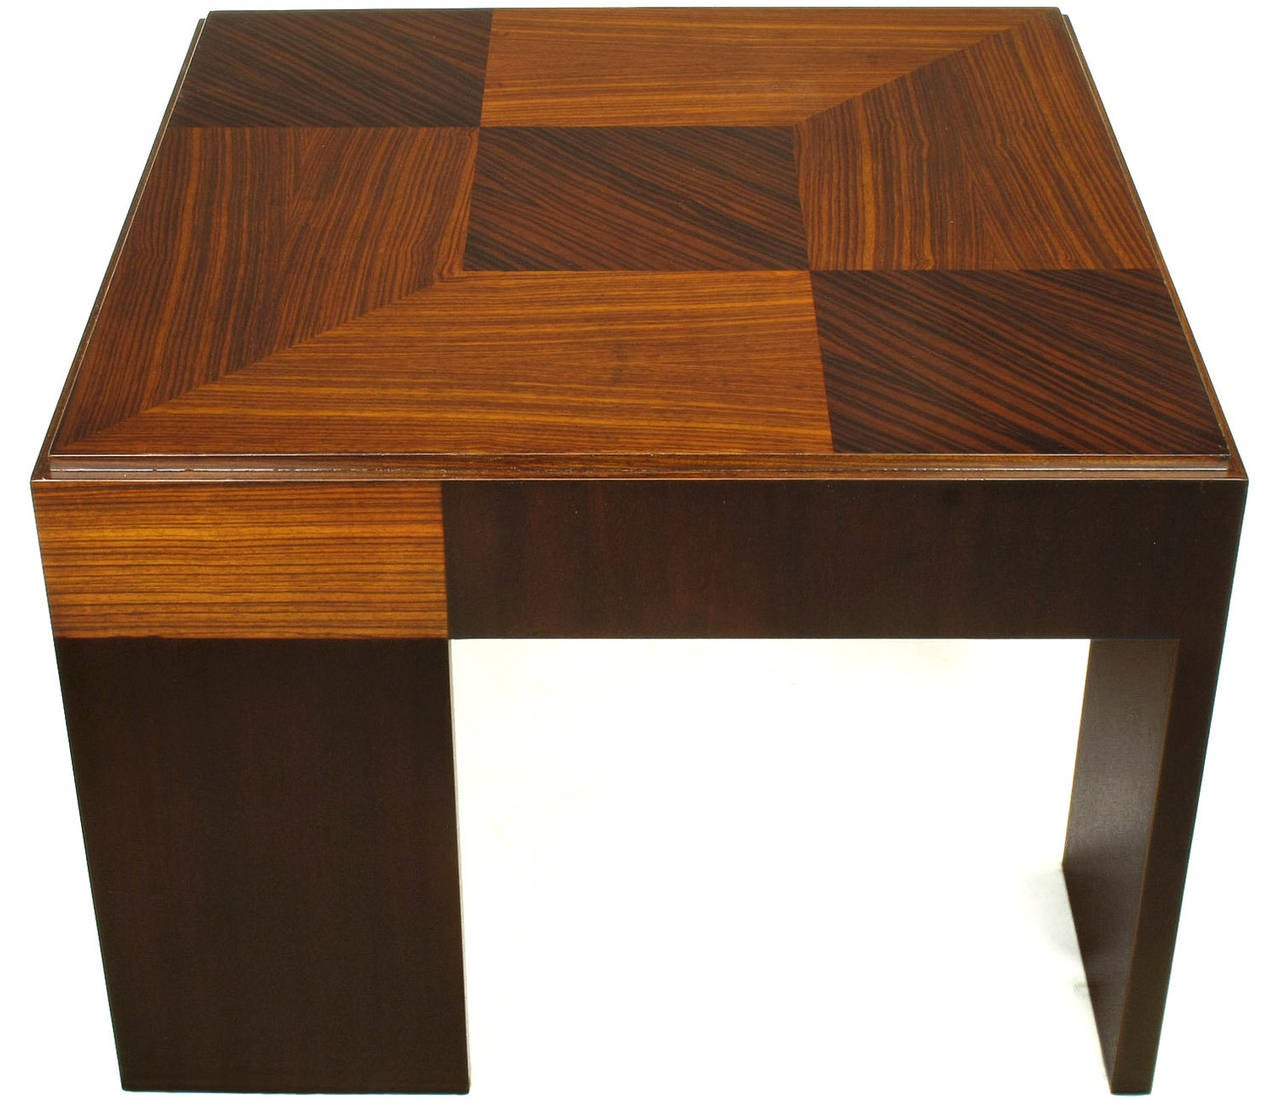 Bexley Heath for John Widdicomb parquetry top petite coffee table. Offset walnut plank legs, bleached and natural Macassar ebony top in geometric checker board pattern.